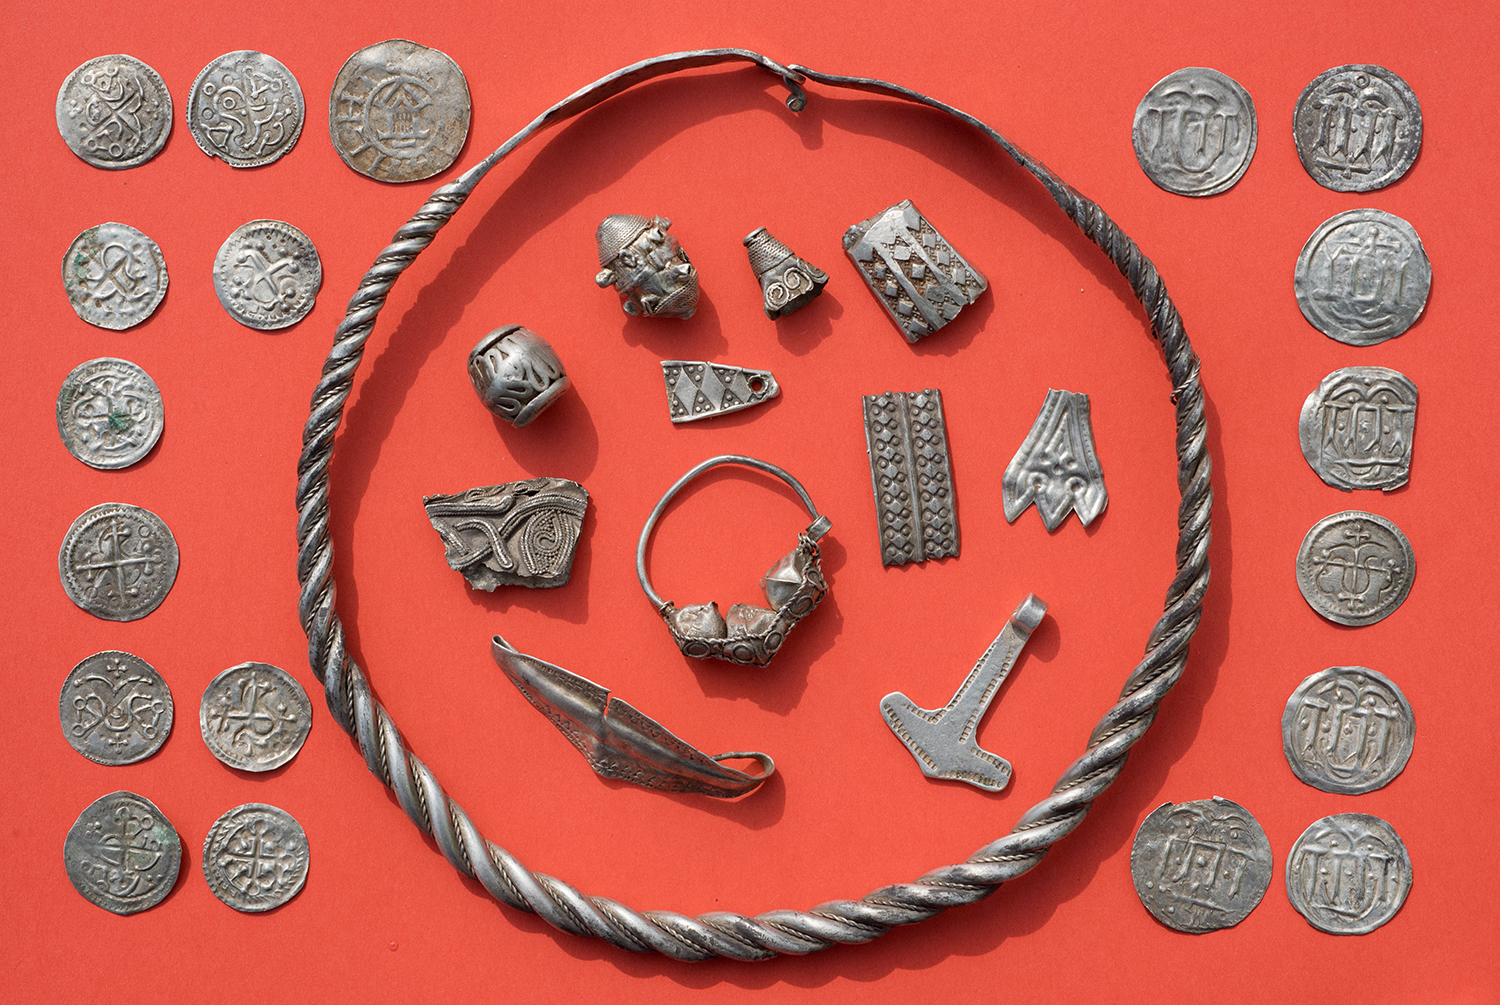 Parts of the silver treasures found in northern Germany which may have belonged to the legendary Danish king Harald Bluetooth who brought Christianity to Denmark. (Credit: Stefan Sauer/AFP/Getty Images)